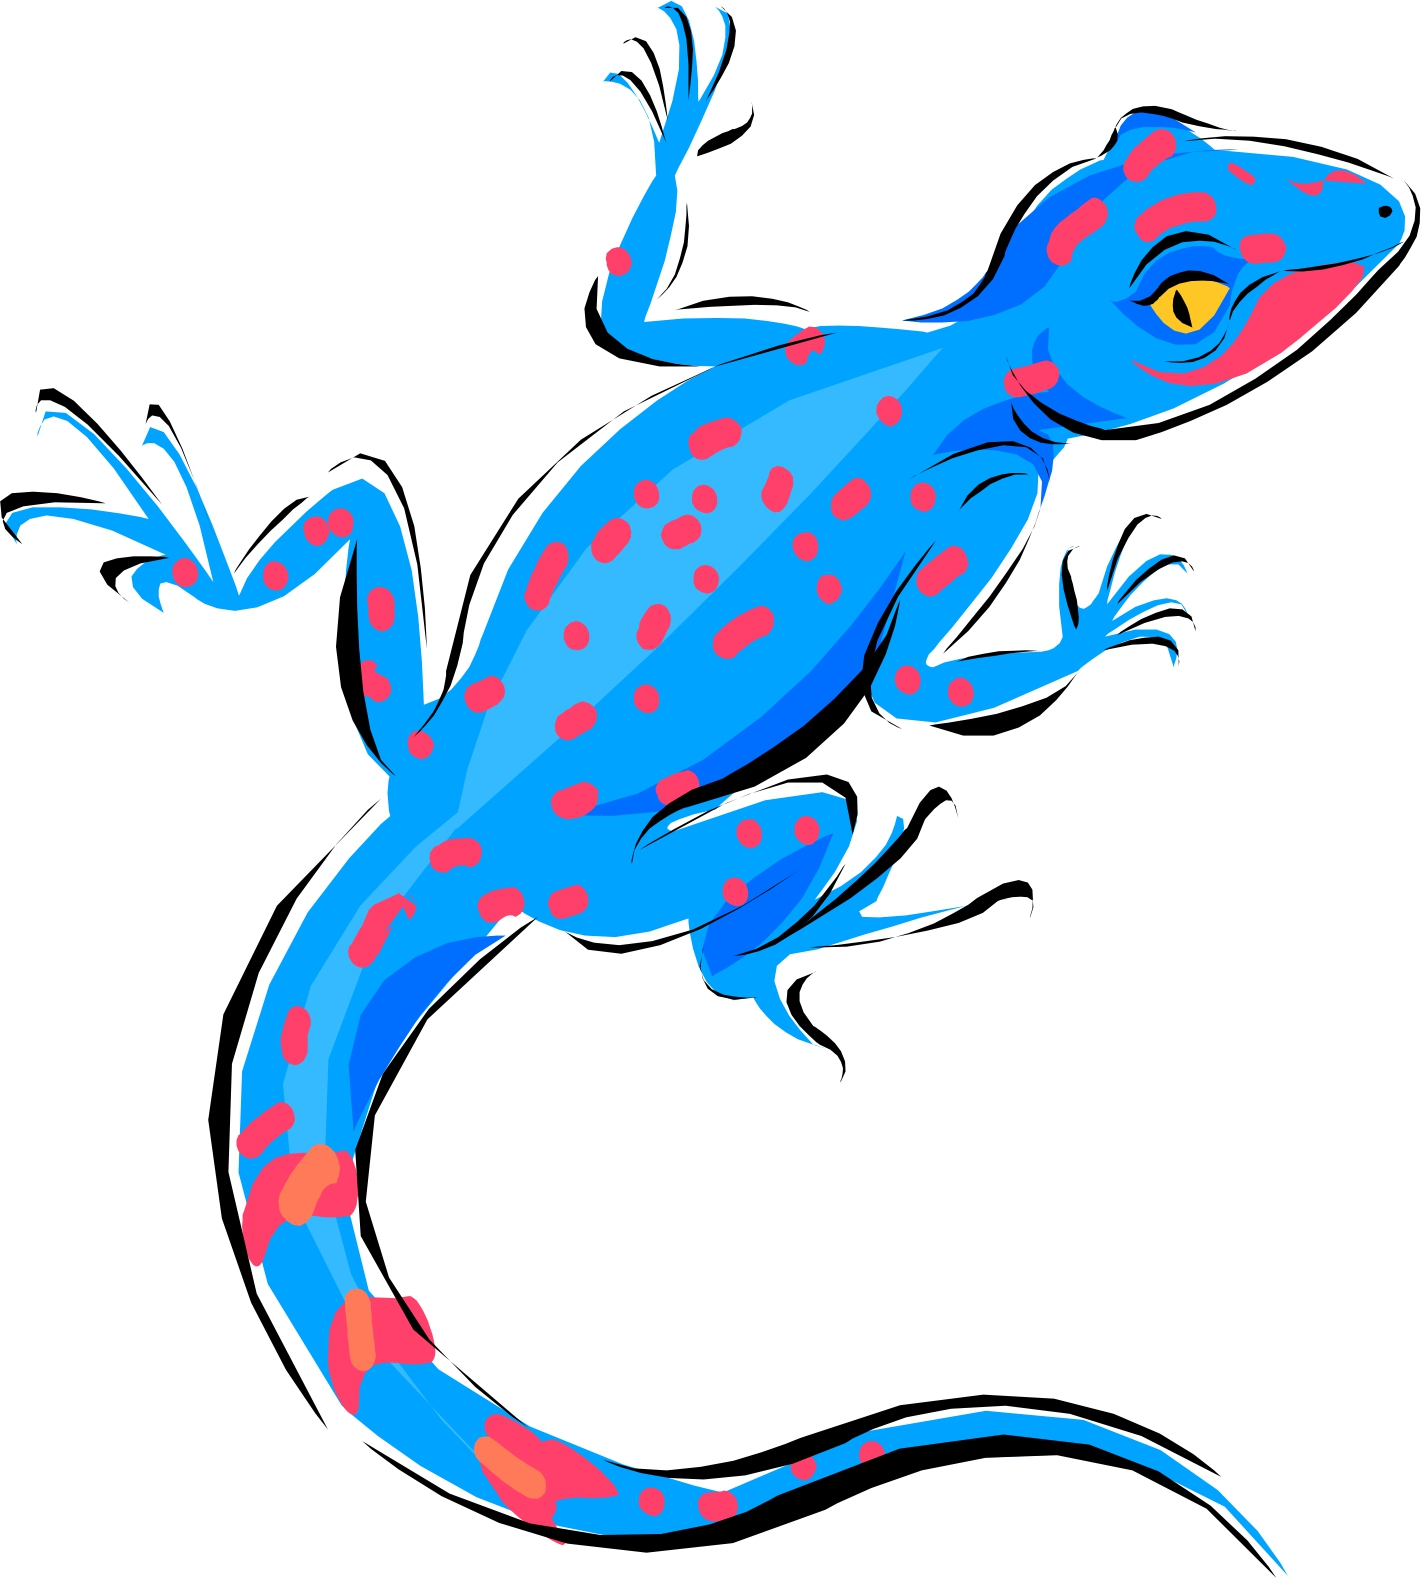 A blue and red lizard